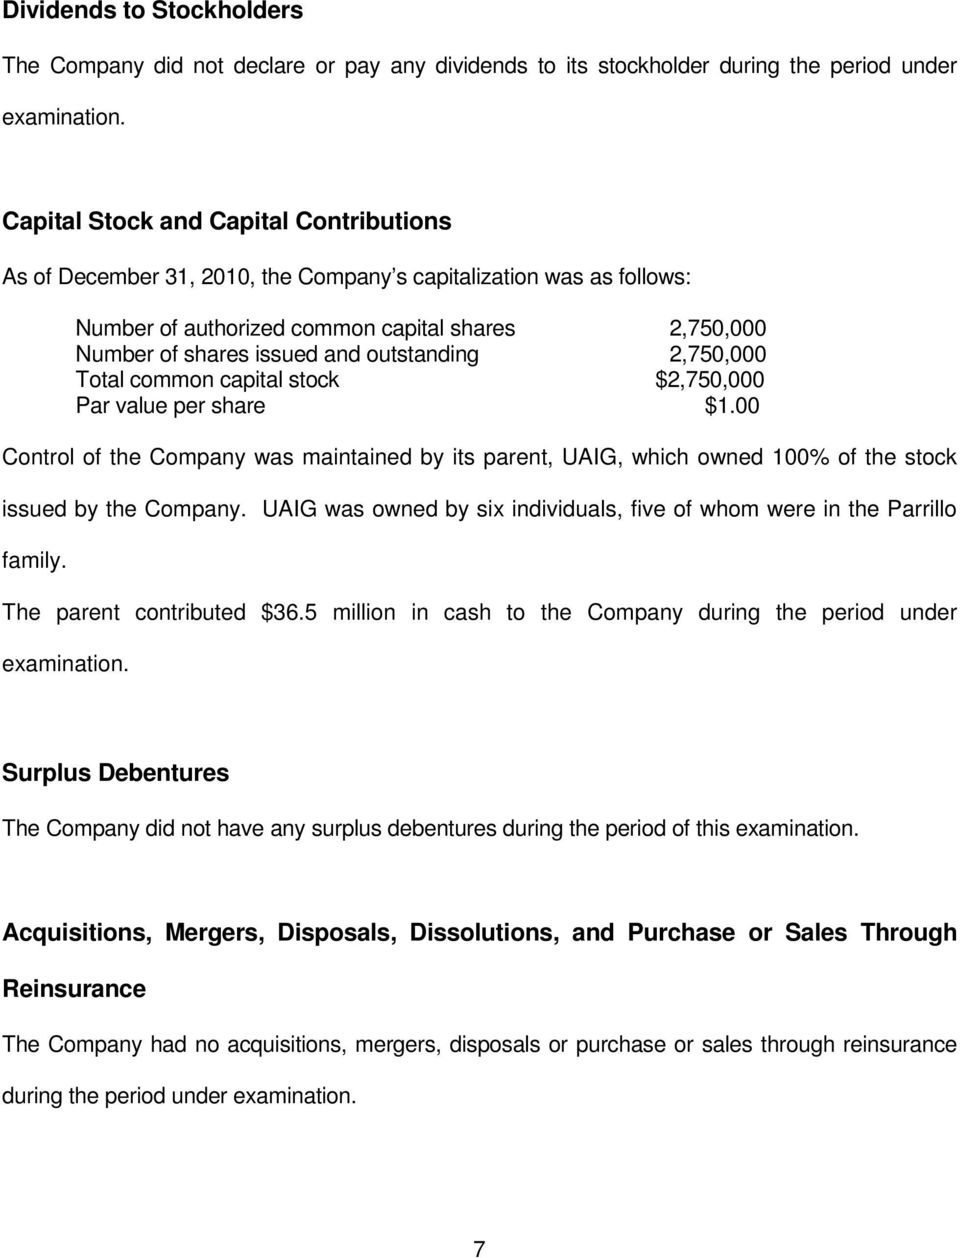 outstanding 2,750,000 Total common capital stock $2,750,000 Par value per share $1.00 Control of the Company was maintained by its parent, UAIG, which owned 100% of the stock issued by the Company.